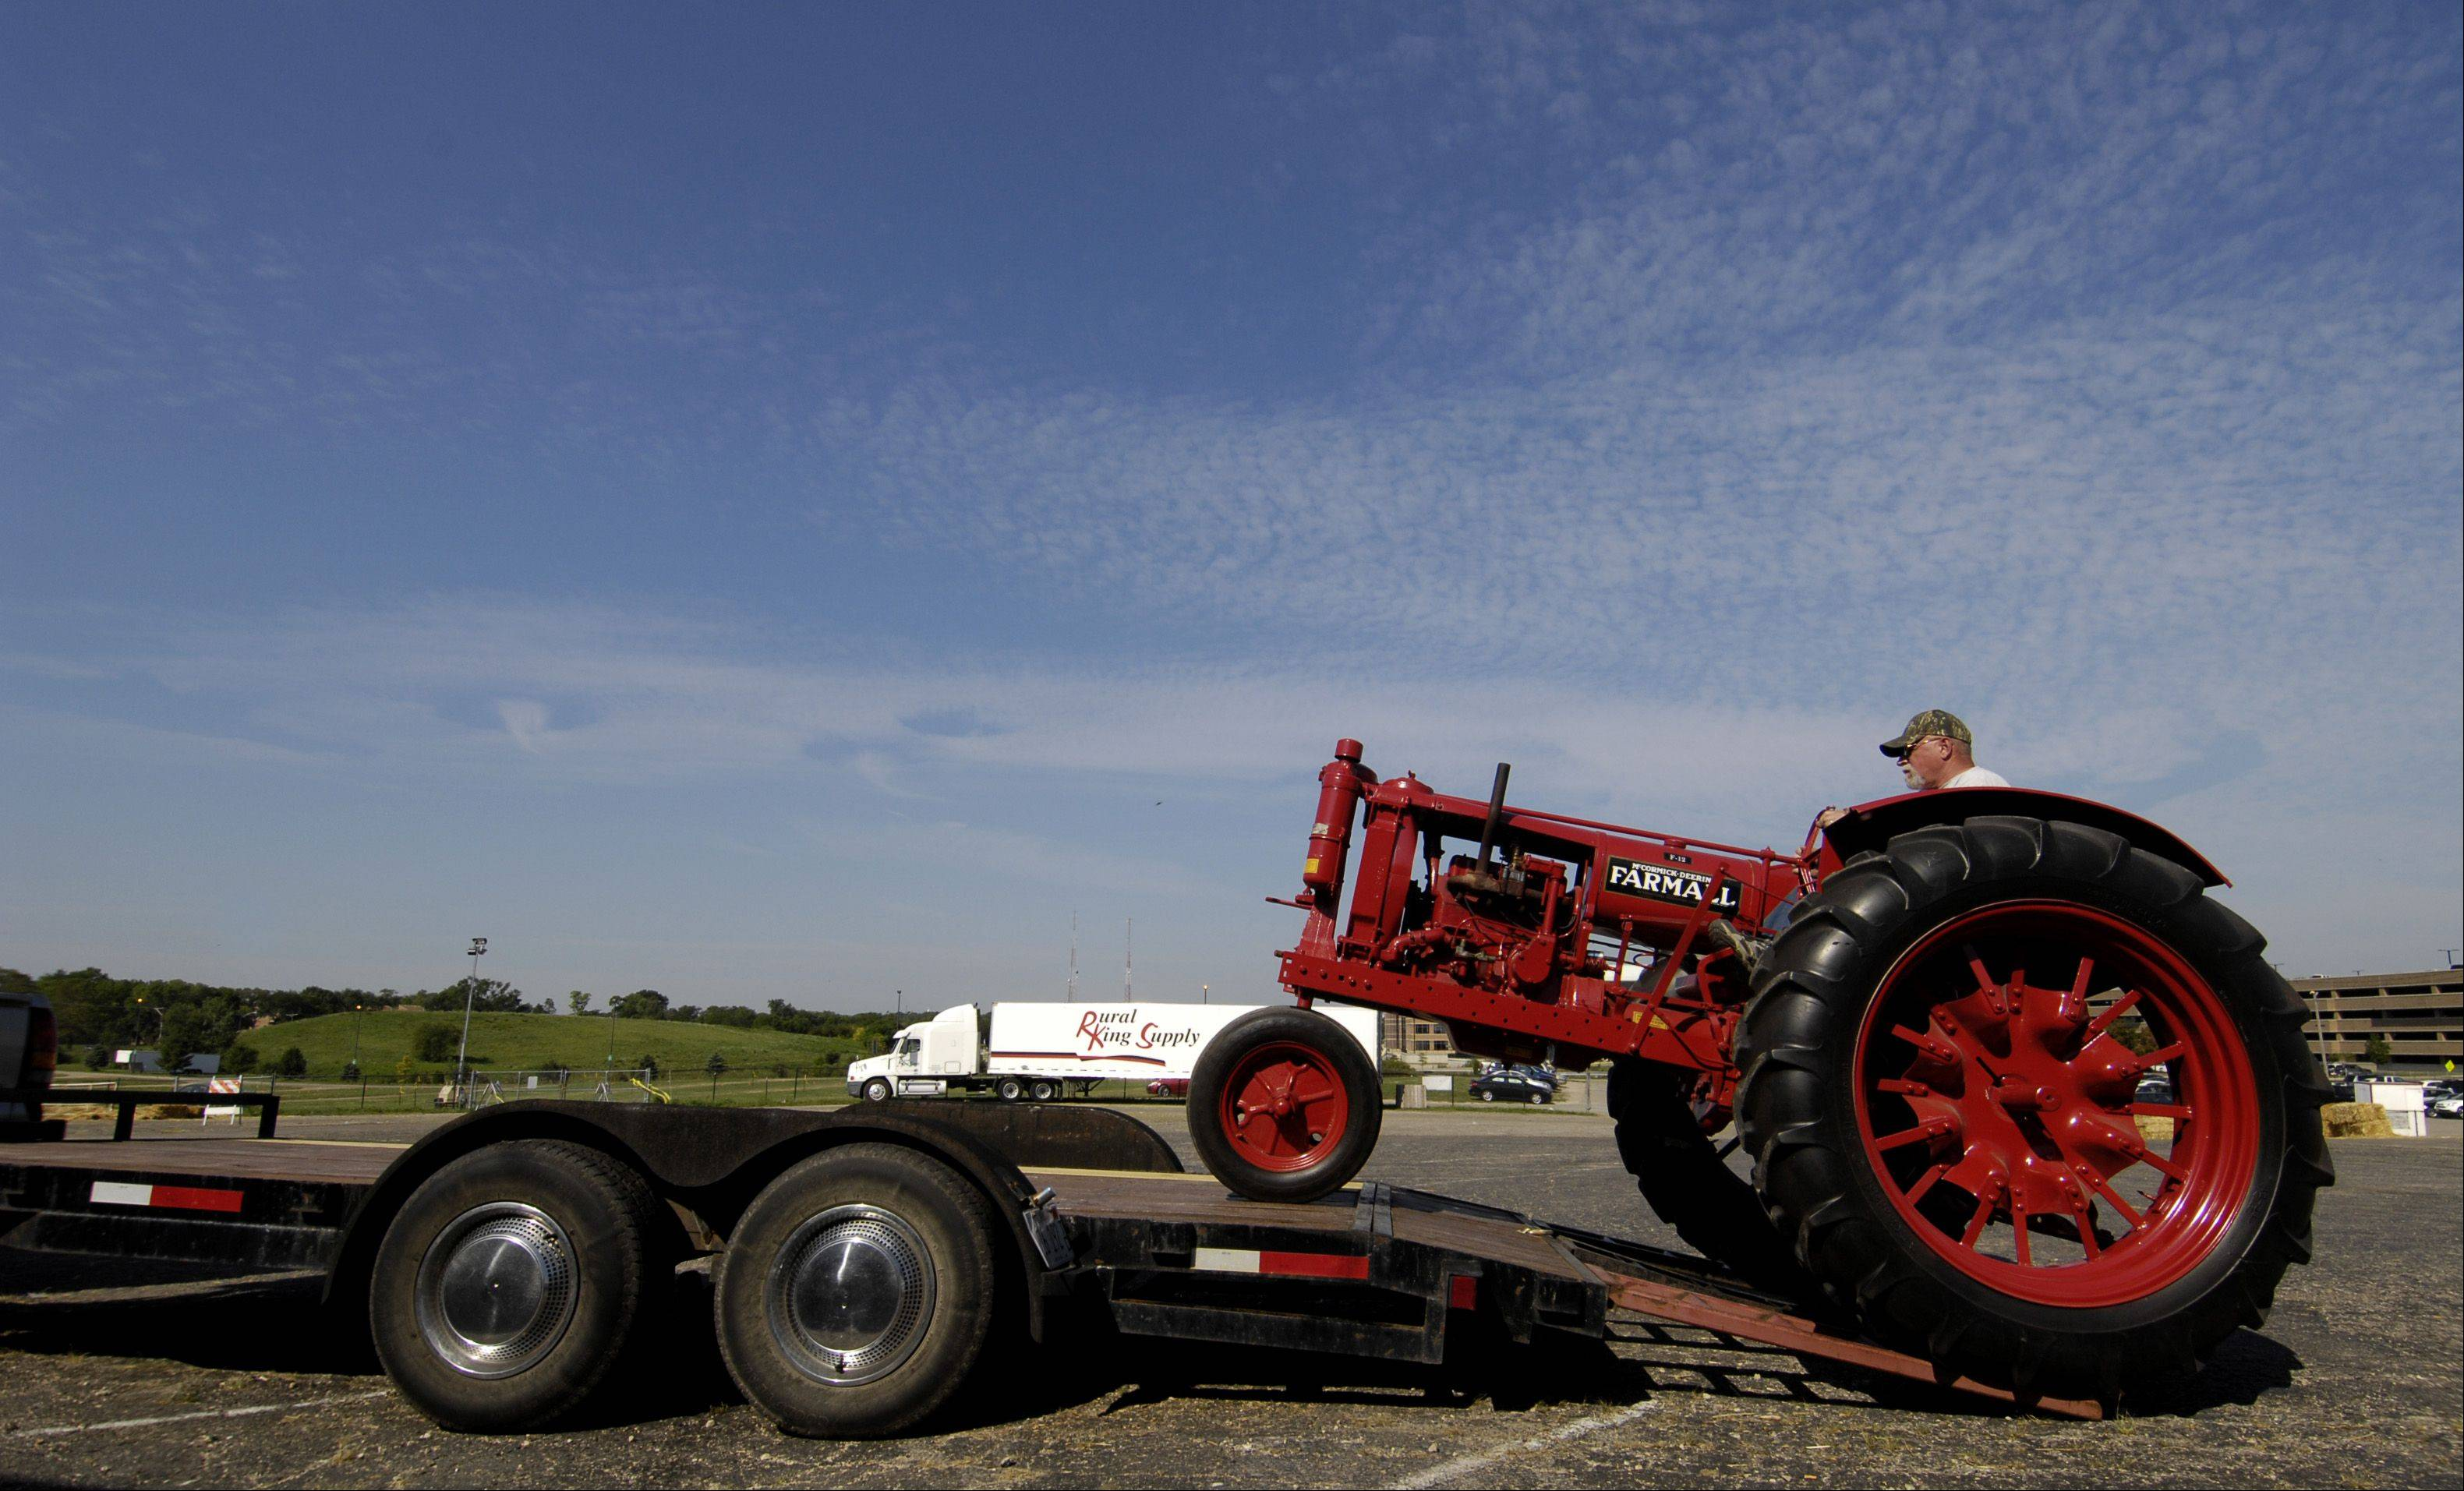 Steve Hageman of Yorkville drives a 1937 Farmall F-12 tractor onto a flatbed trailer as he and his father Wilbert pack up their antique tractors after the 2012 DuPage County Fair, Monday. The Hageman family used to farm in Naperville.